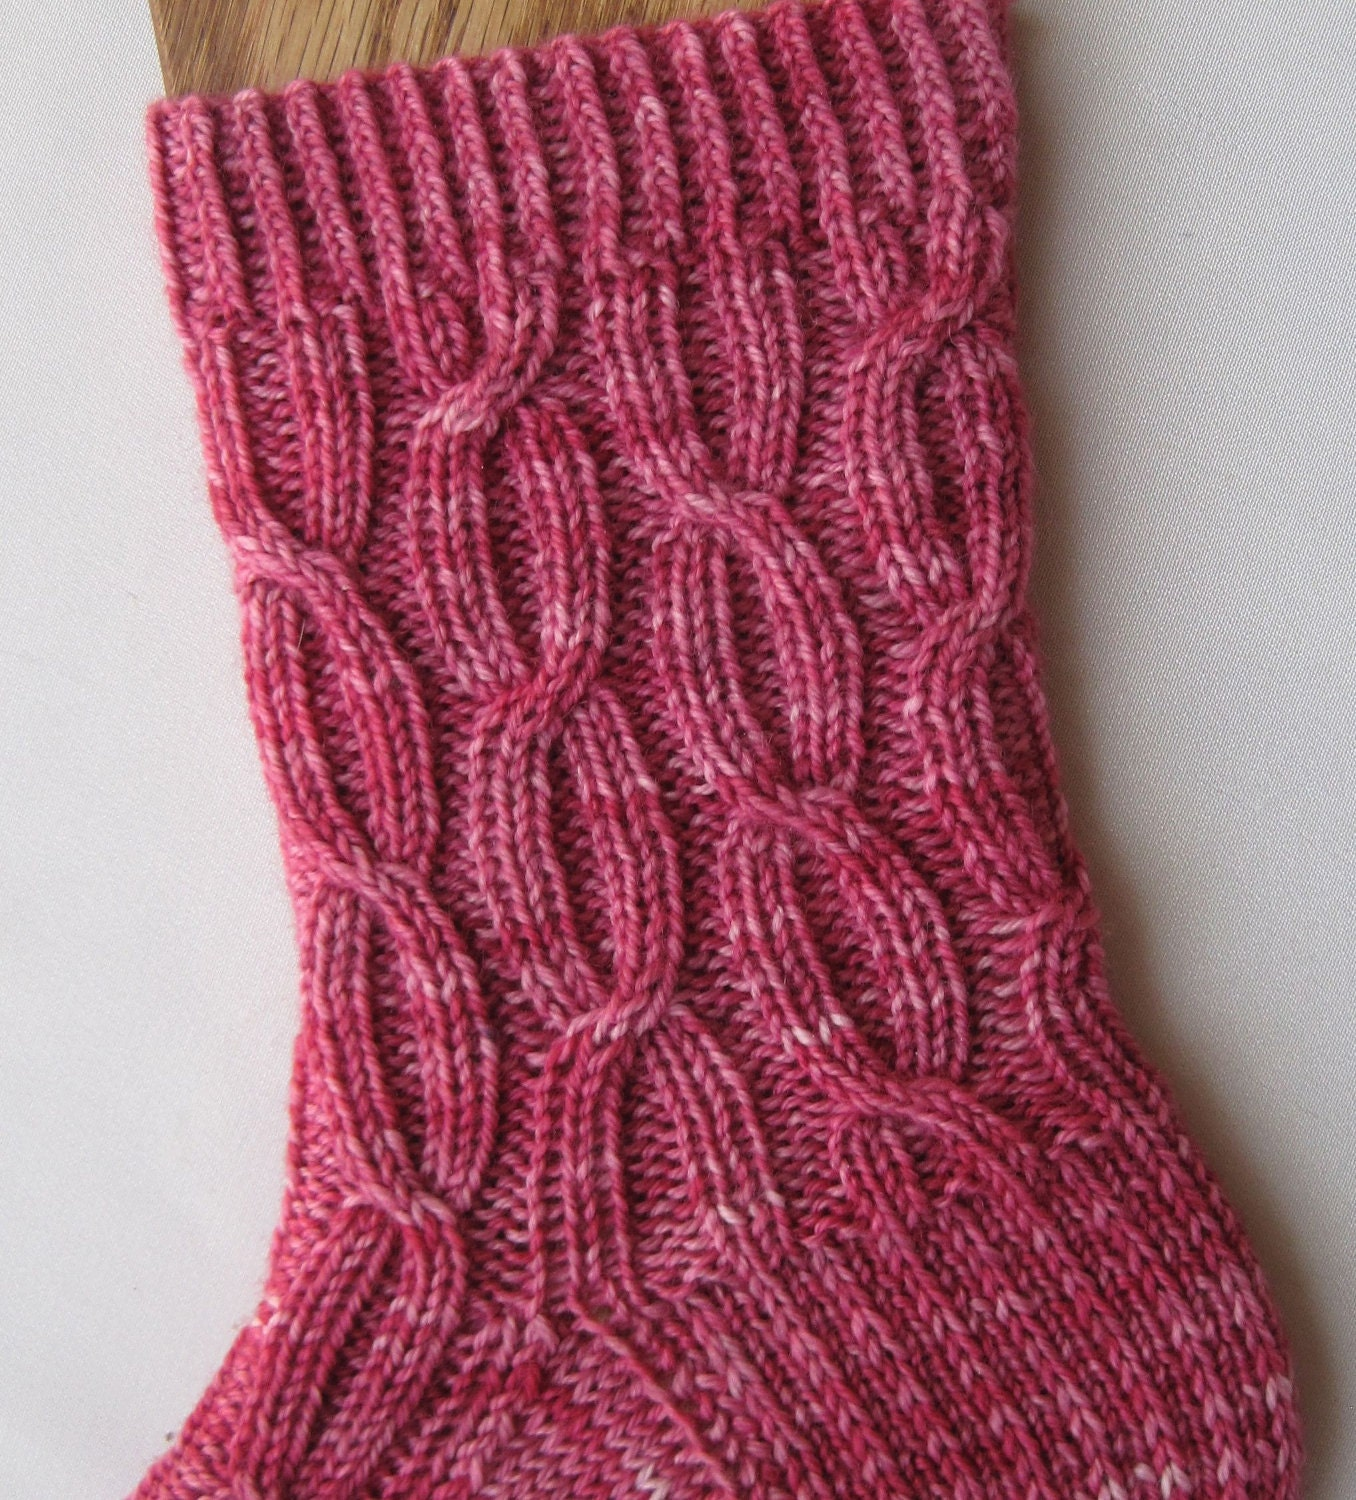 Knit Sock Pattern: Easy Cable Ribbed Socks Knitting Pattern